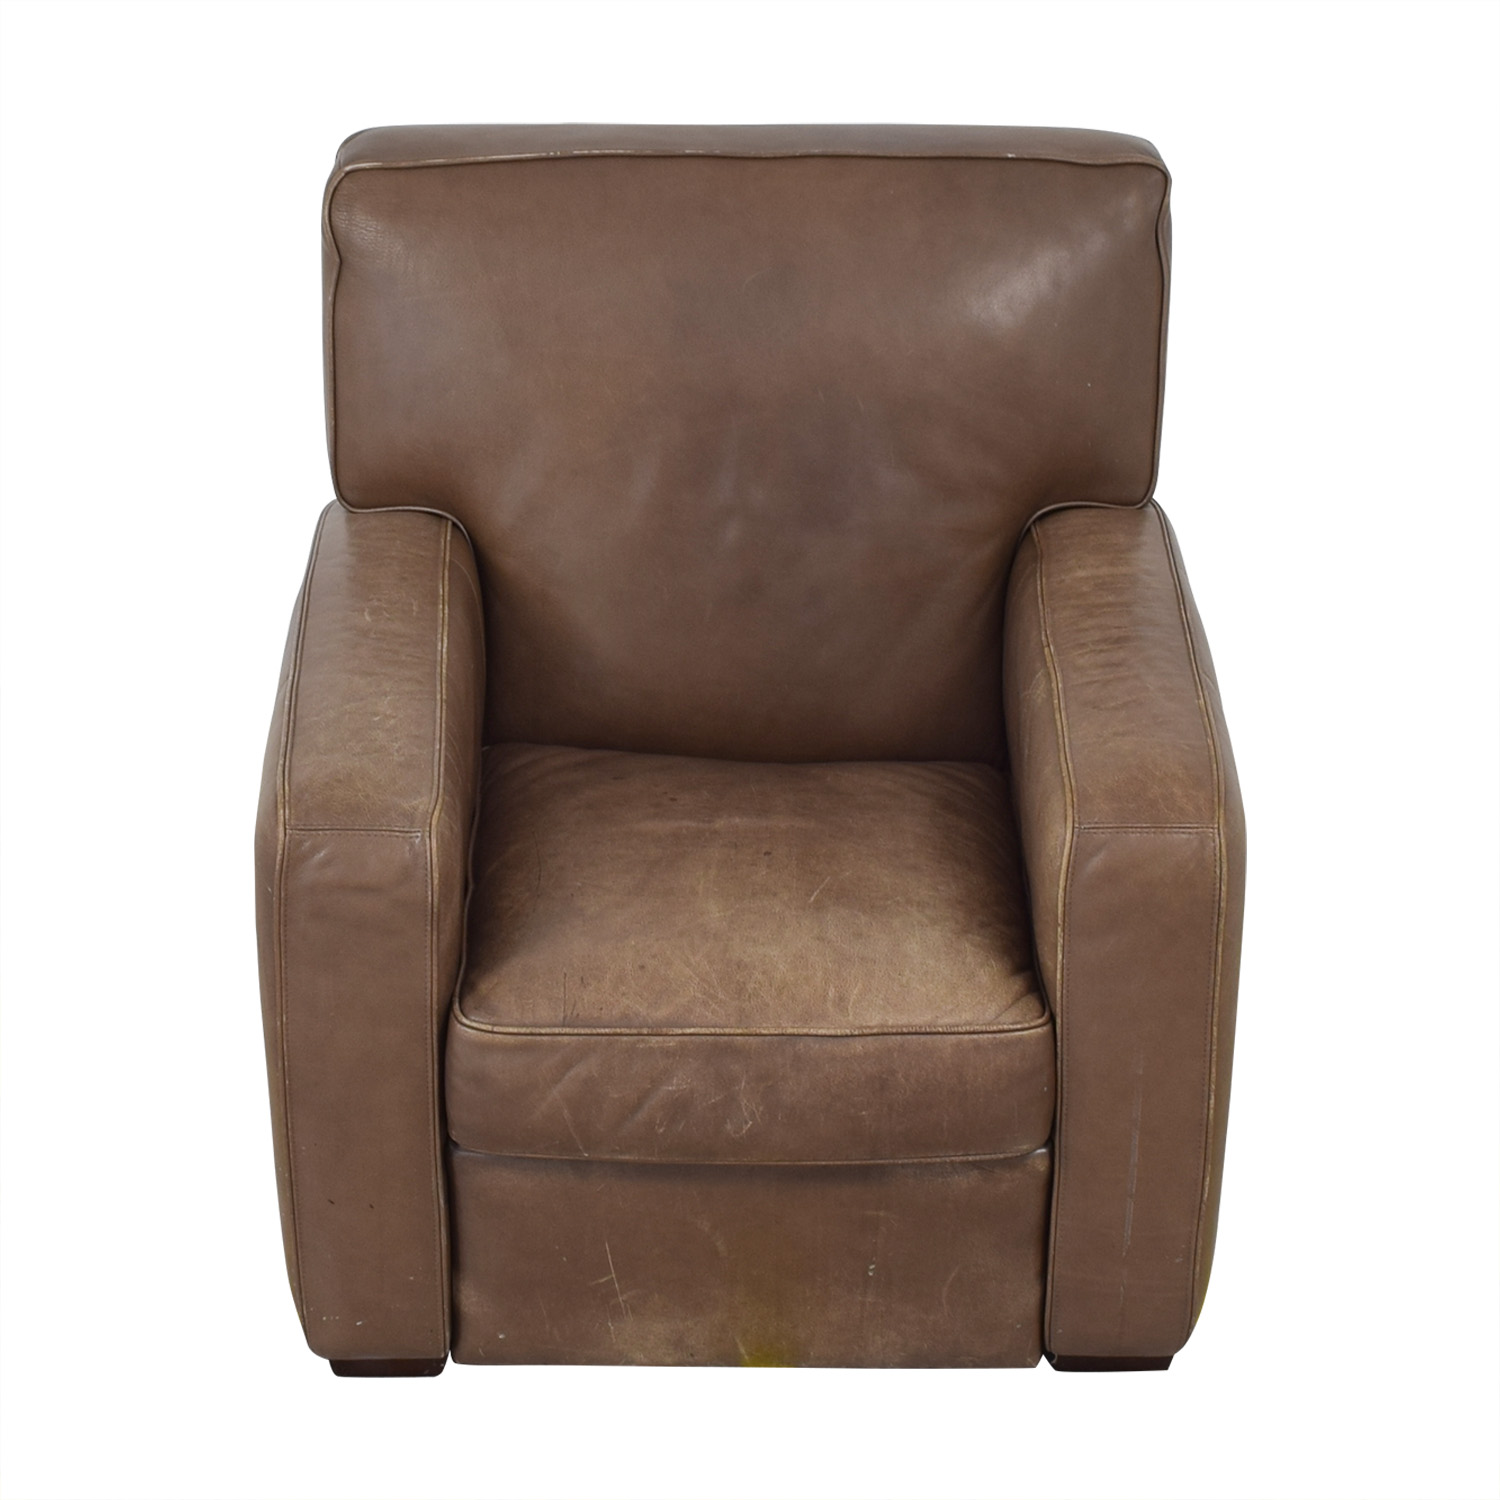 Crate & Barrel Leather Recliner Chair sale